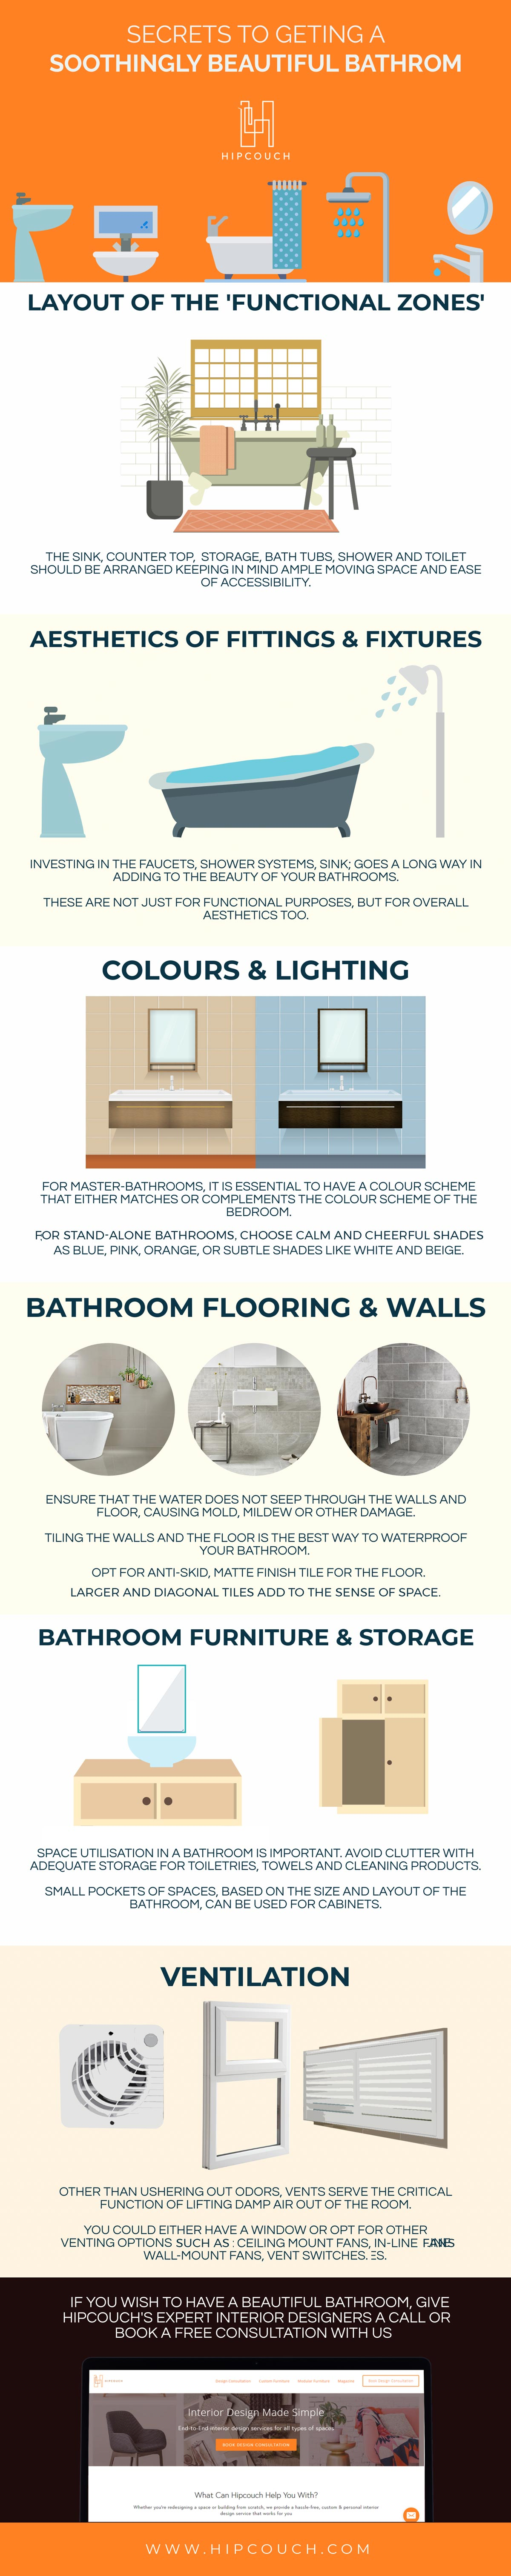 6 Things about Getting Beautiful Bathrooms Your Contractor Wouldn't Tell You